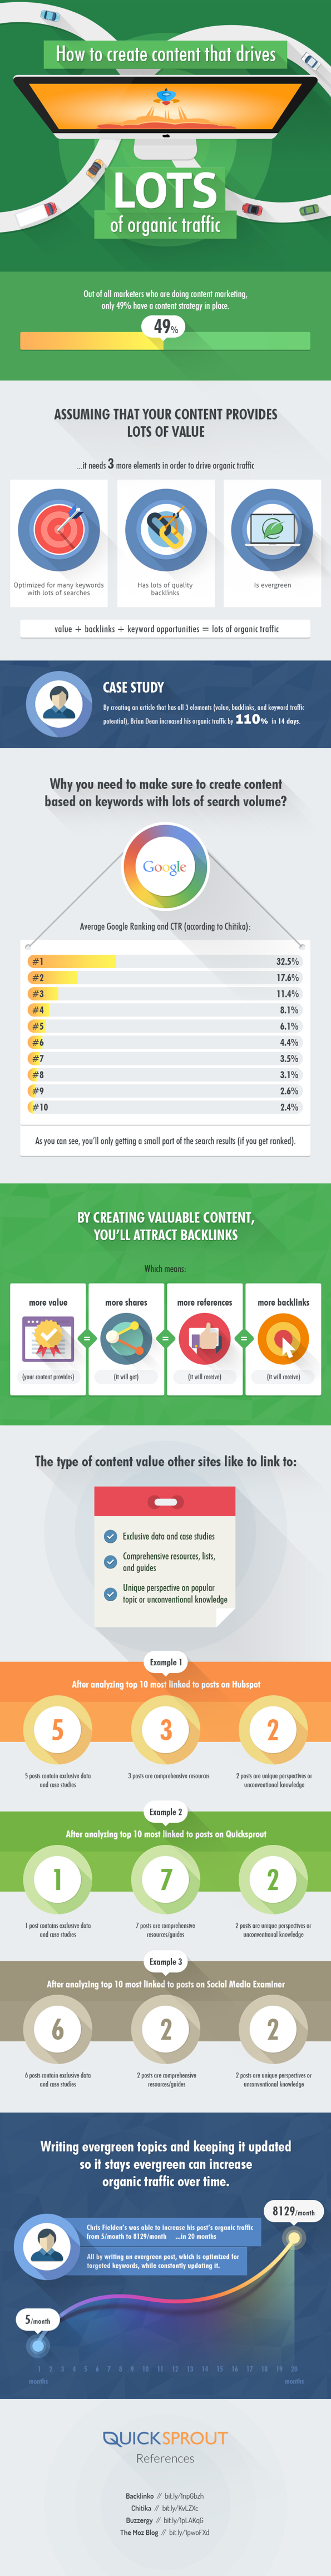 How to Create Content that Drives Traffic to Your Website Infographic image